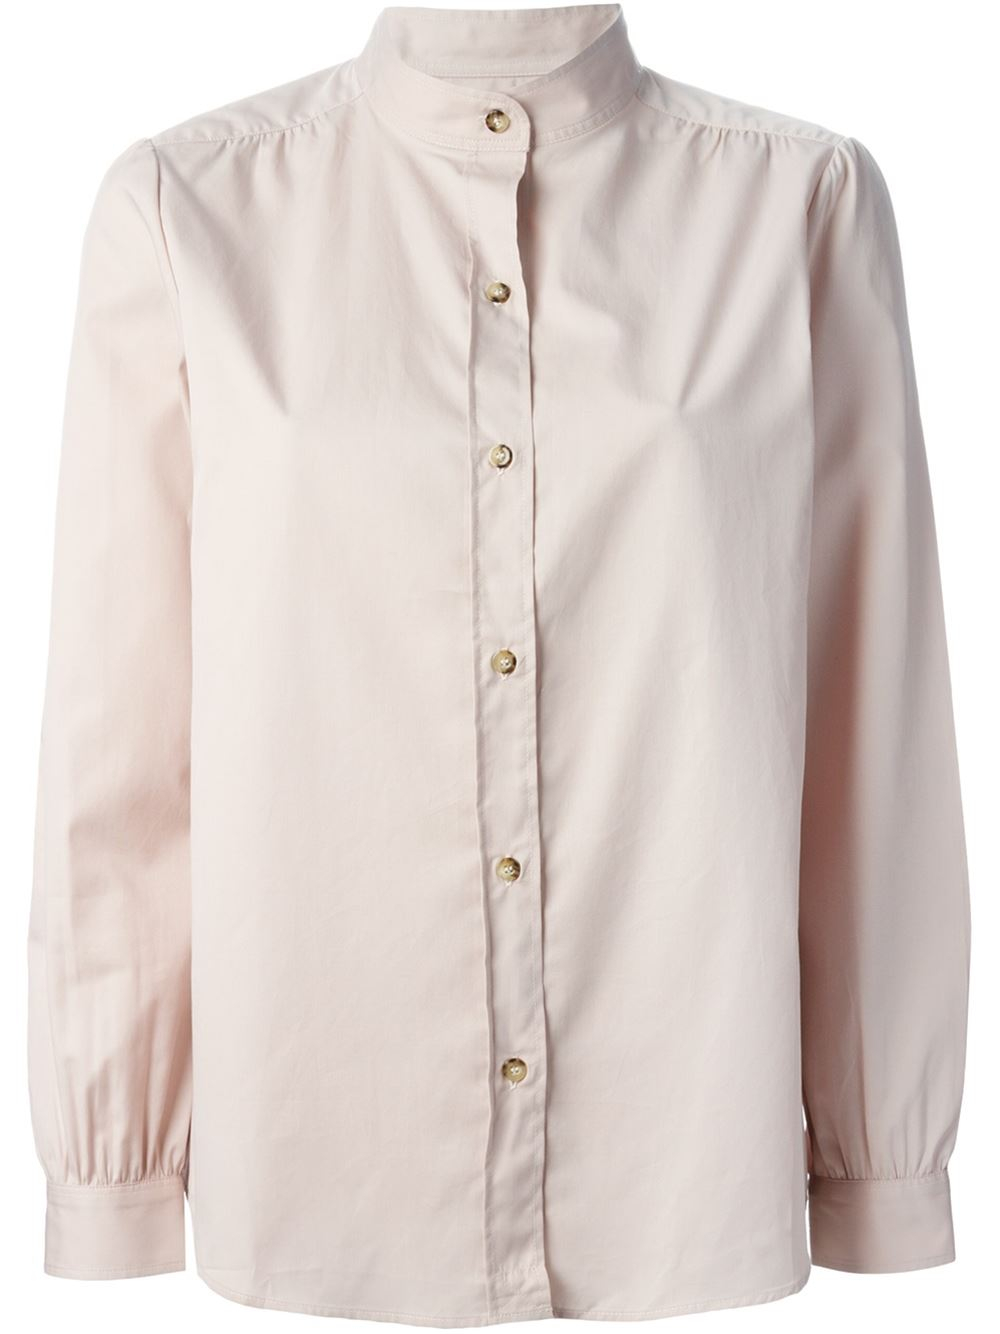 A p c stand up collar shirt in pink pink purple lyst for Stand collar shirt womens